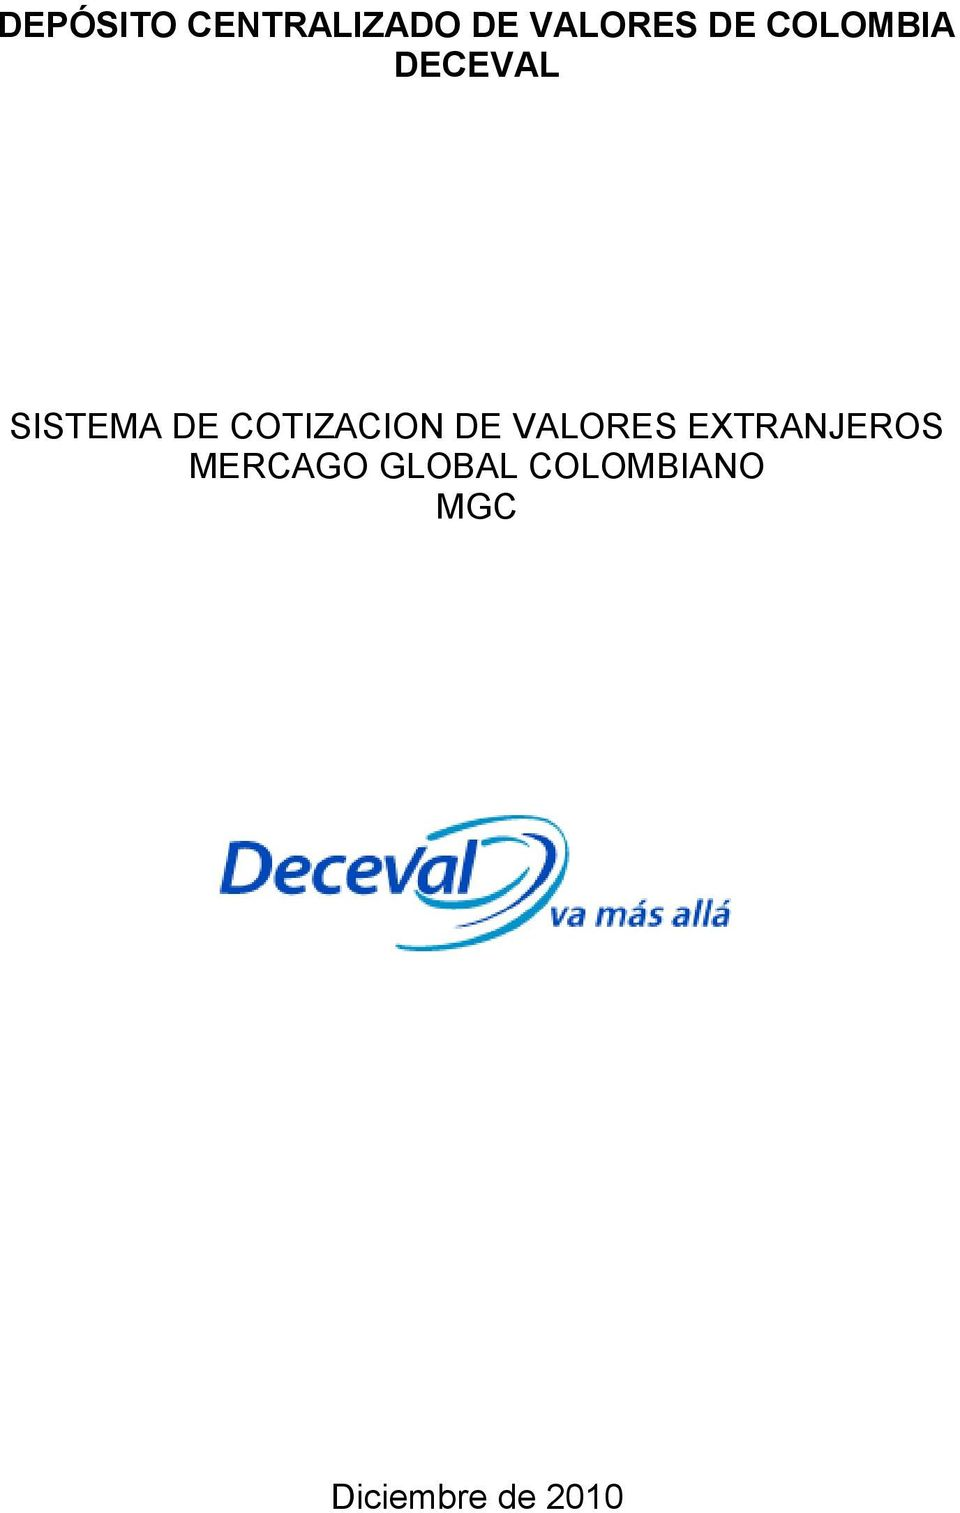 DECEVAL MERCAGO GLOBAL